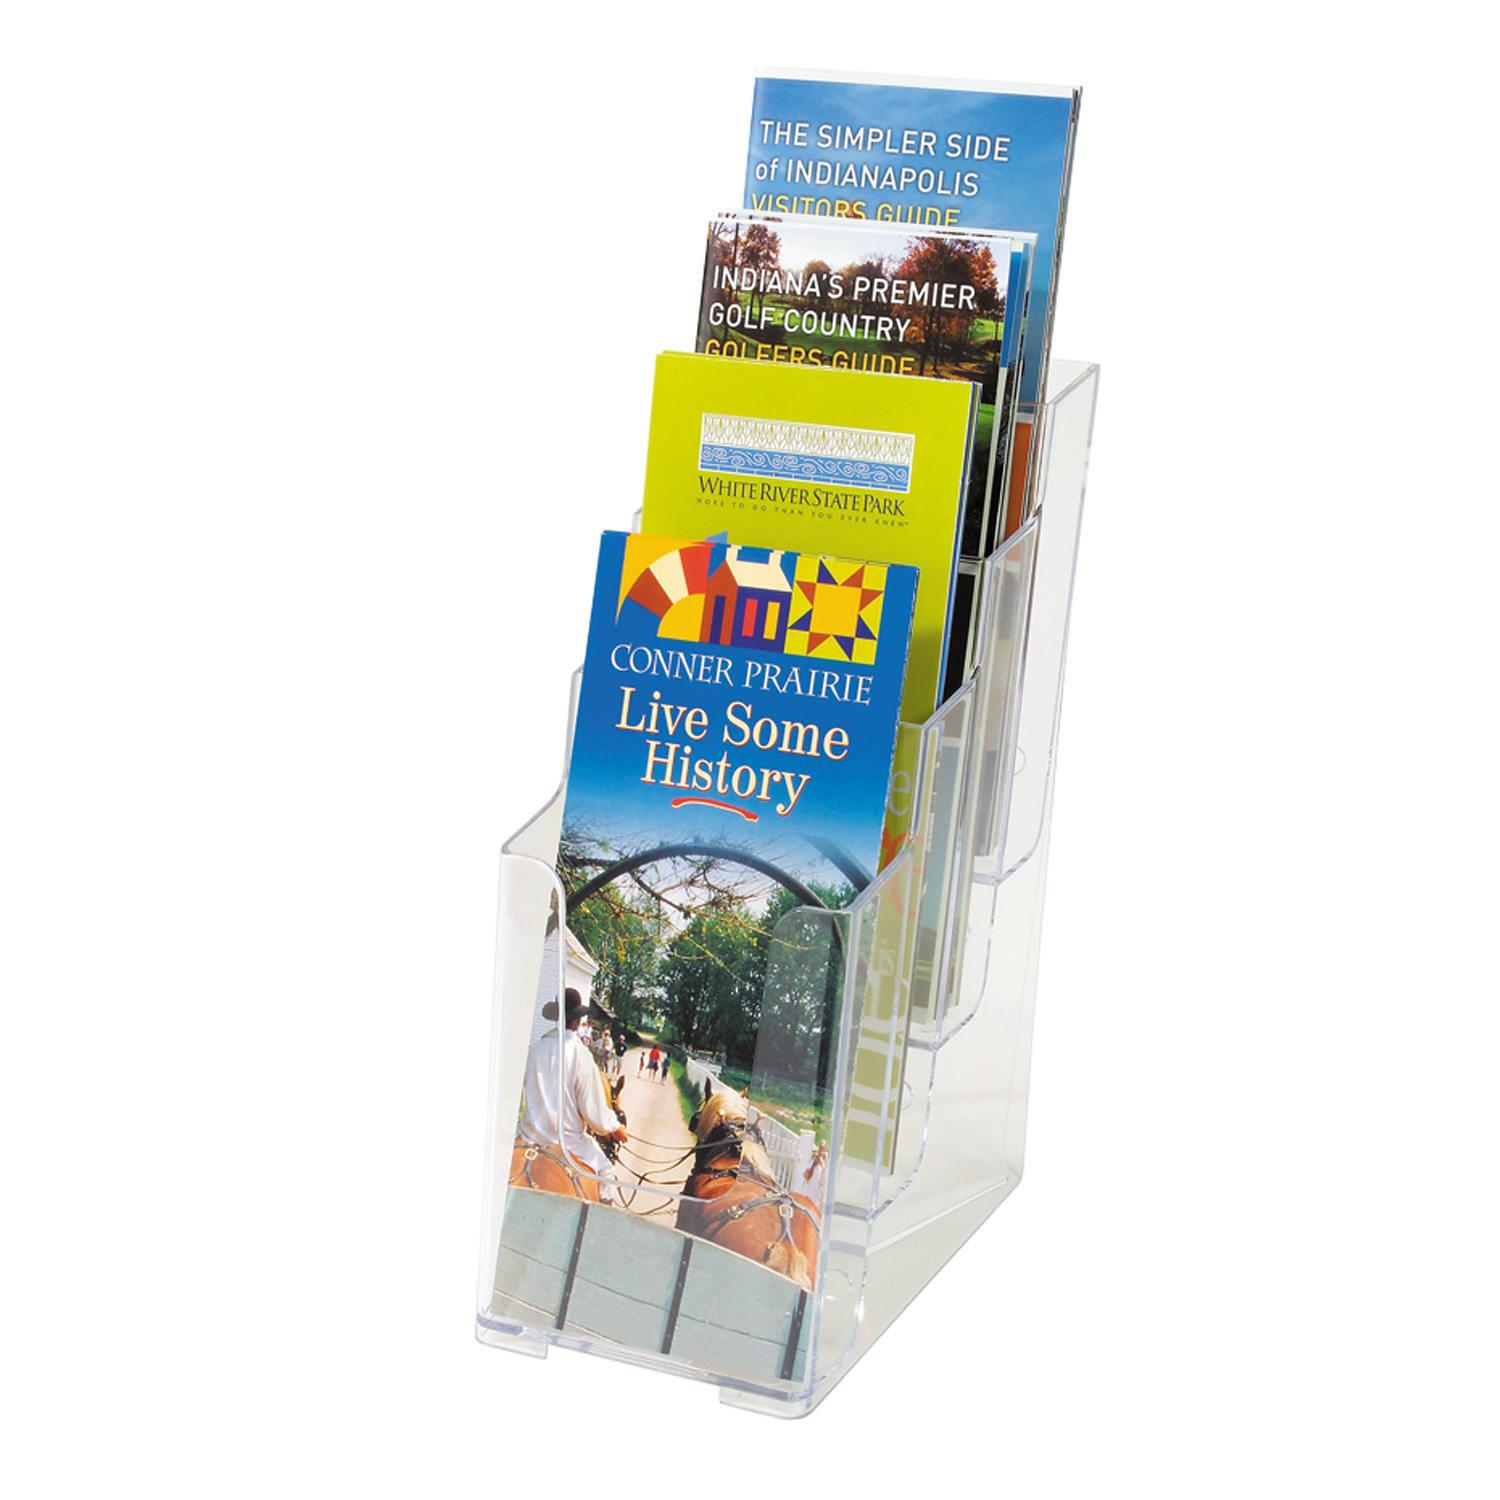 Deflecto 77701 Literature Rack 4 Shelves Transparent